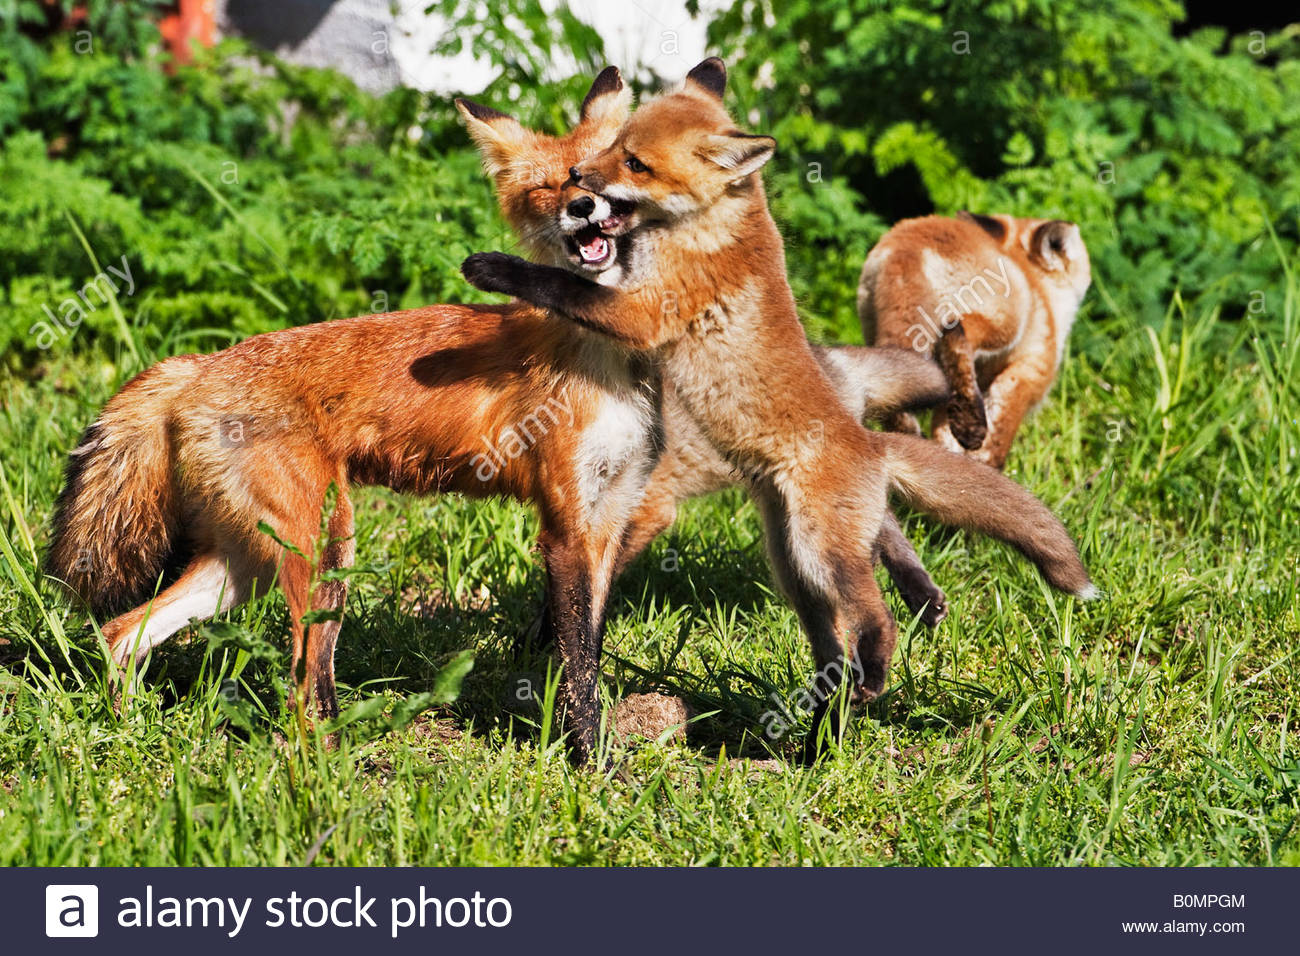 Baby red fox playing